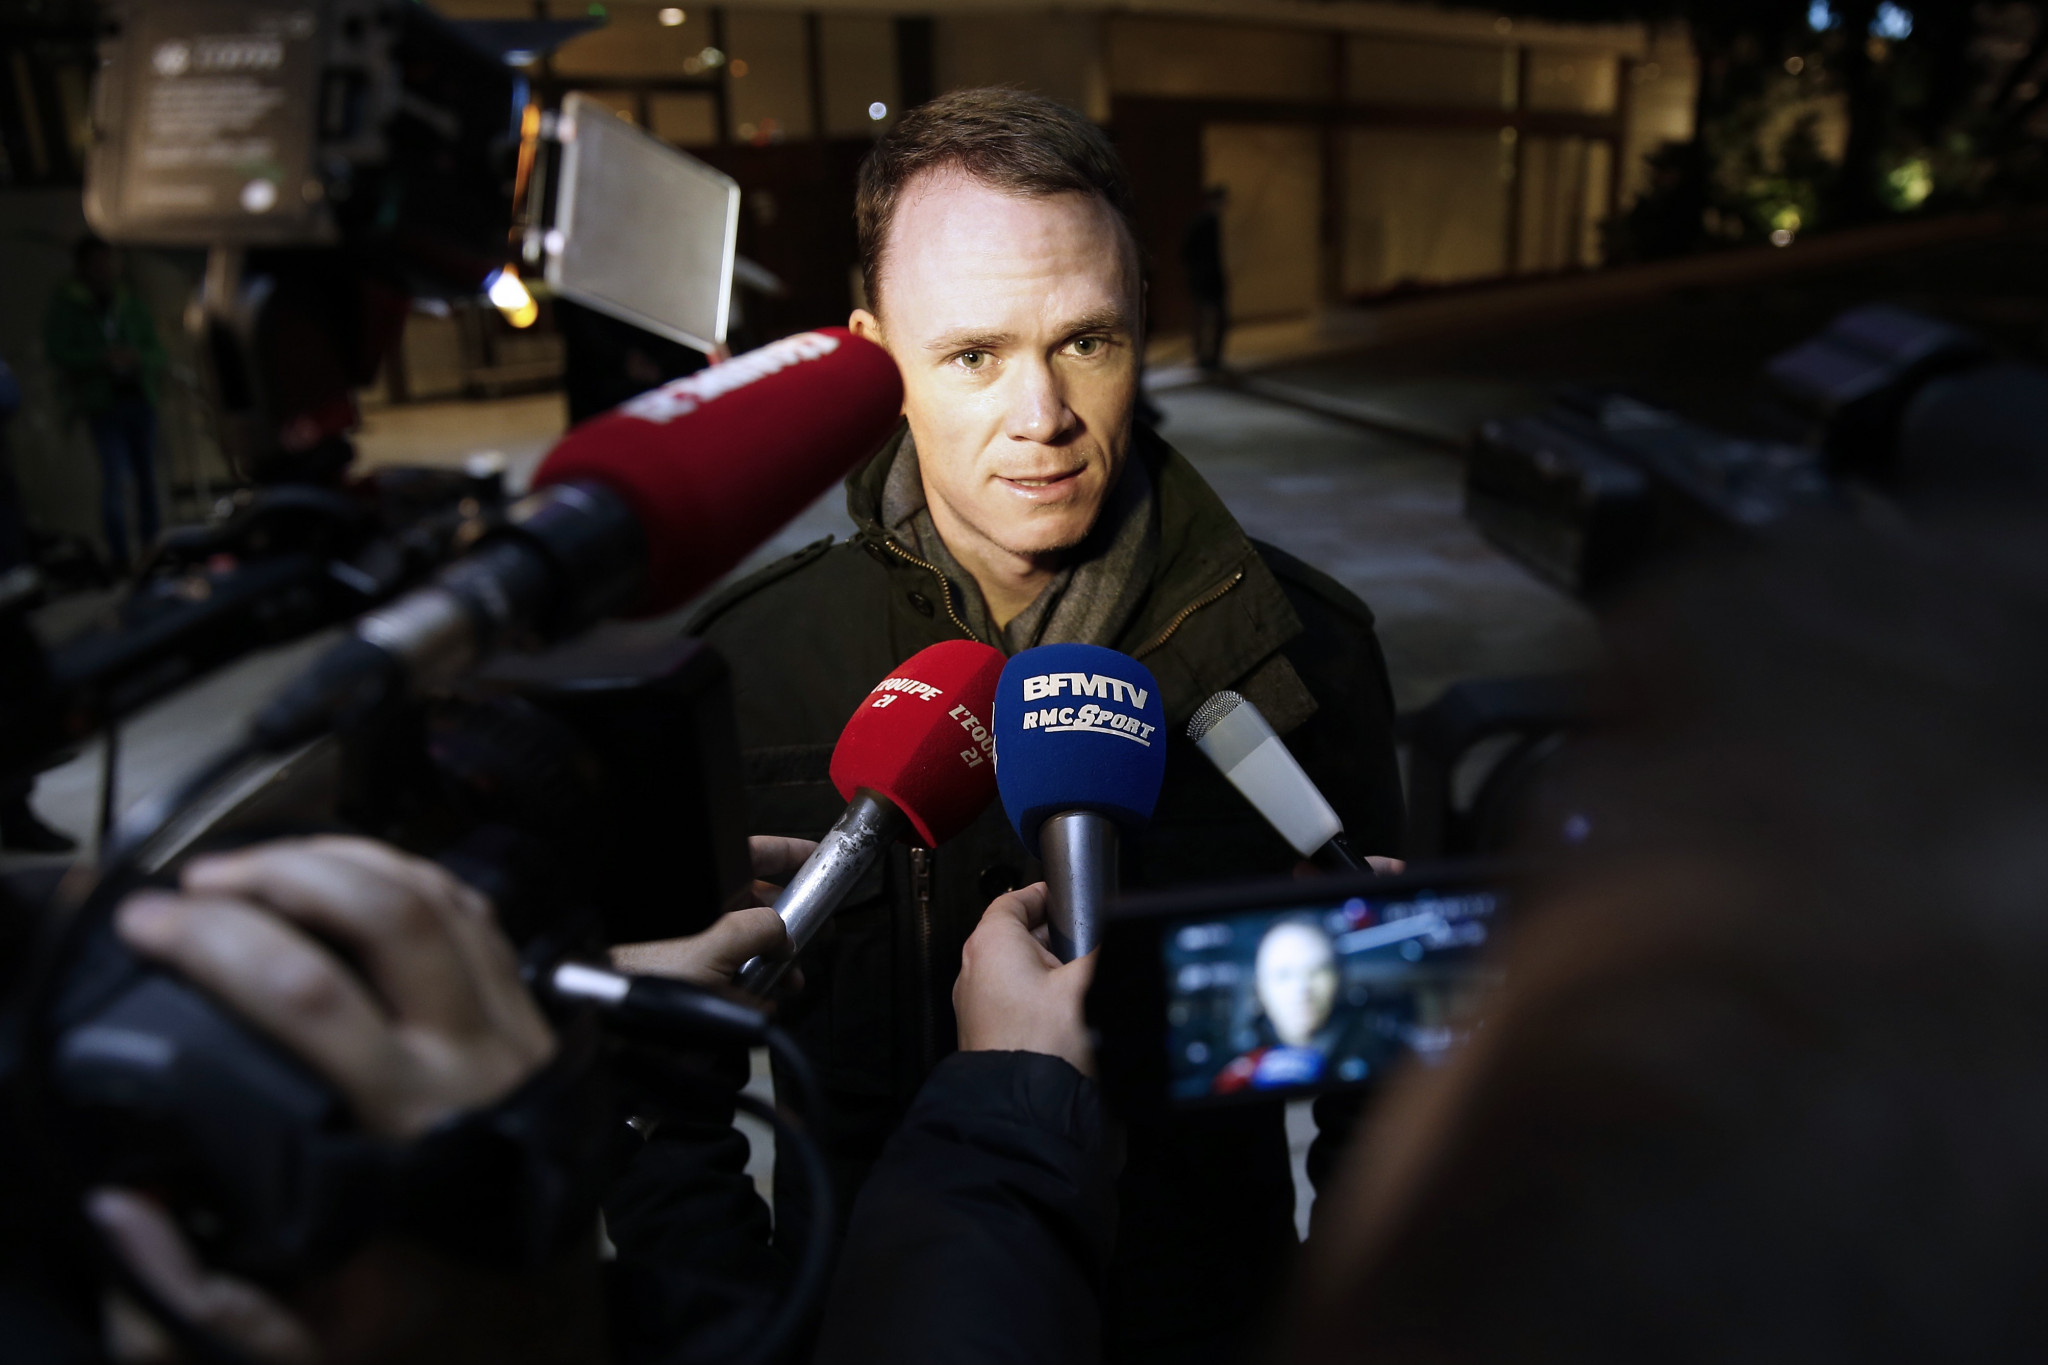 Tour de France winner Christopher Froome speaks to the press before the start of the Peace and Sport walk on November 25, 2015 in Monaco ©Getty Images